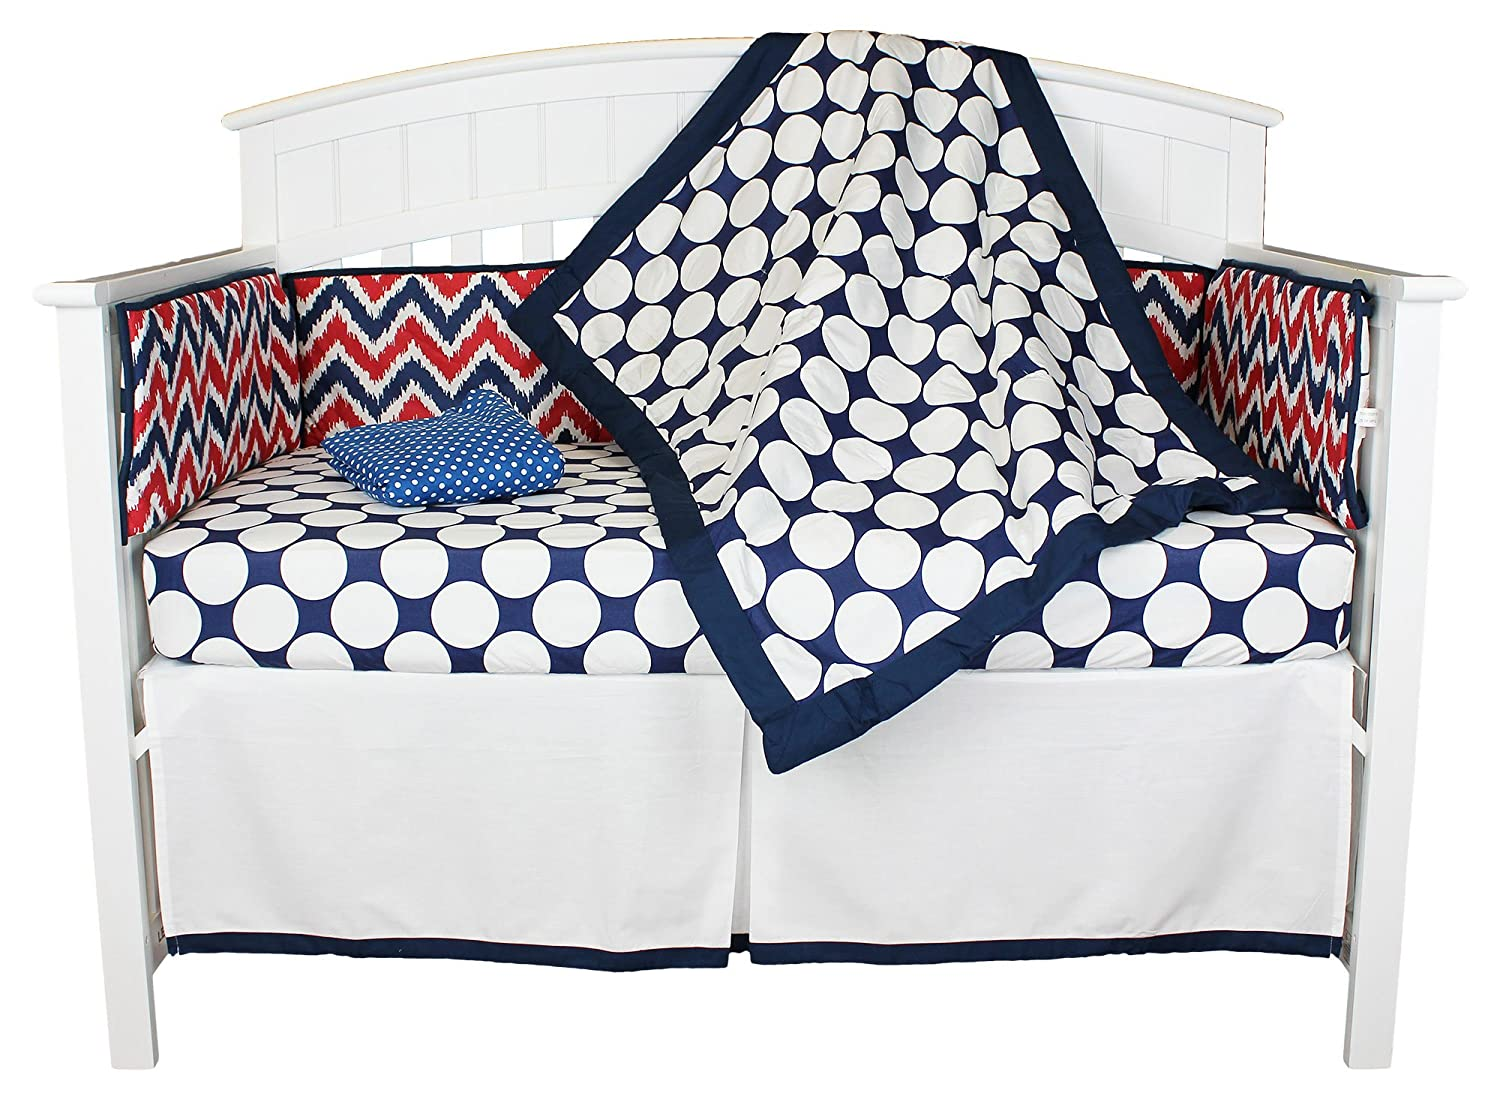 Red White and Blue Chevron and Dots 5 Piece Crib Bedding Set with Bumper by Bacati   B01B0S8COG